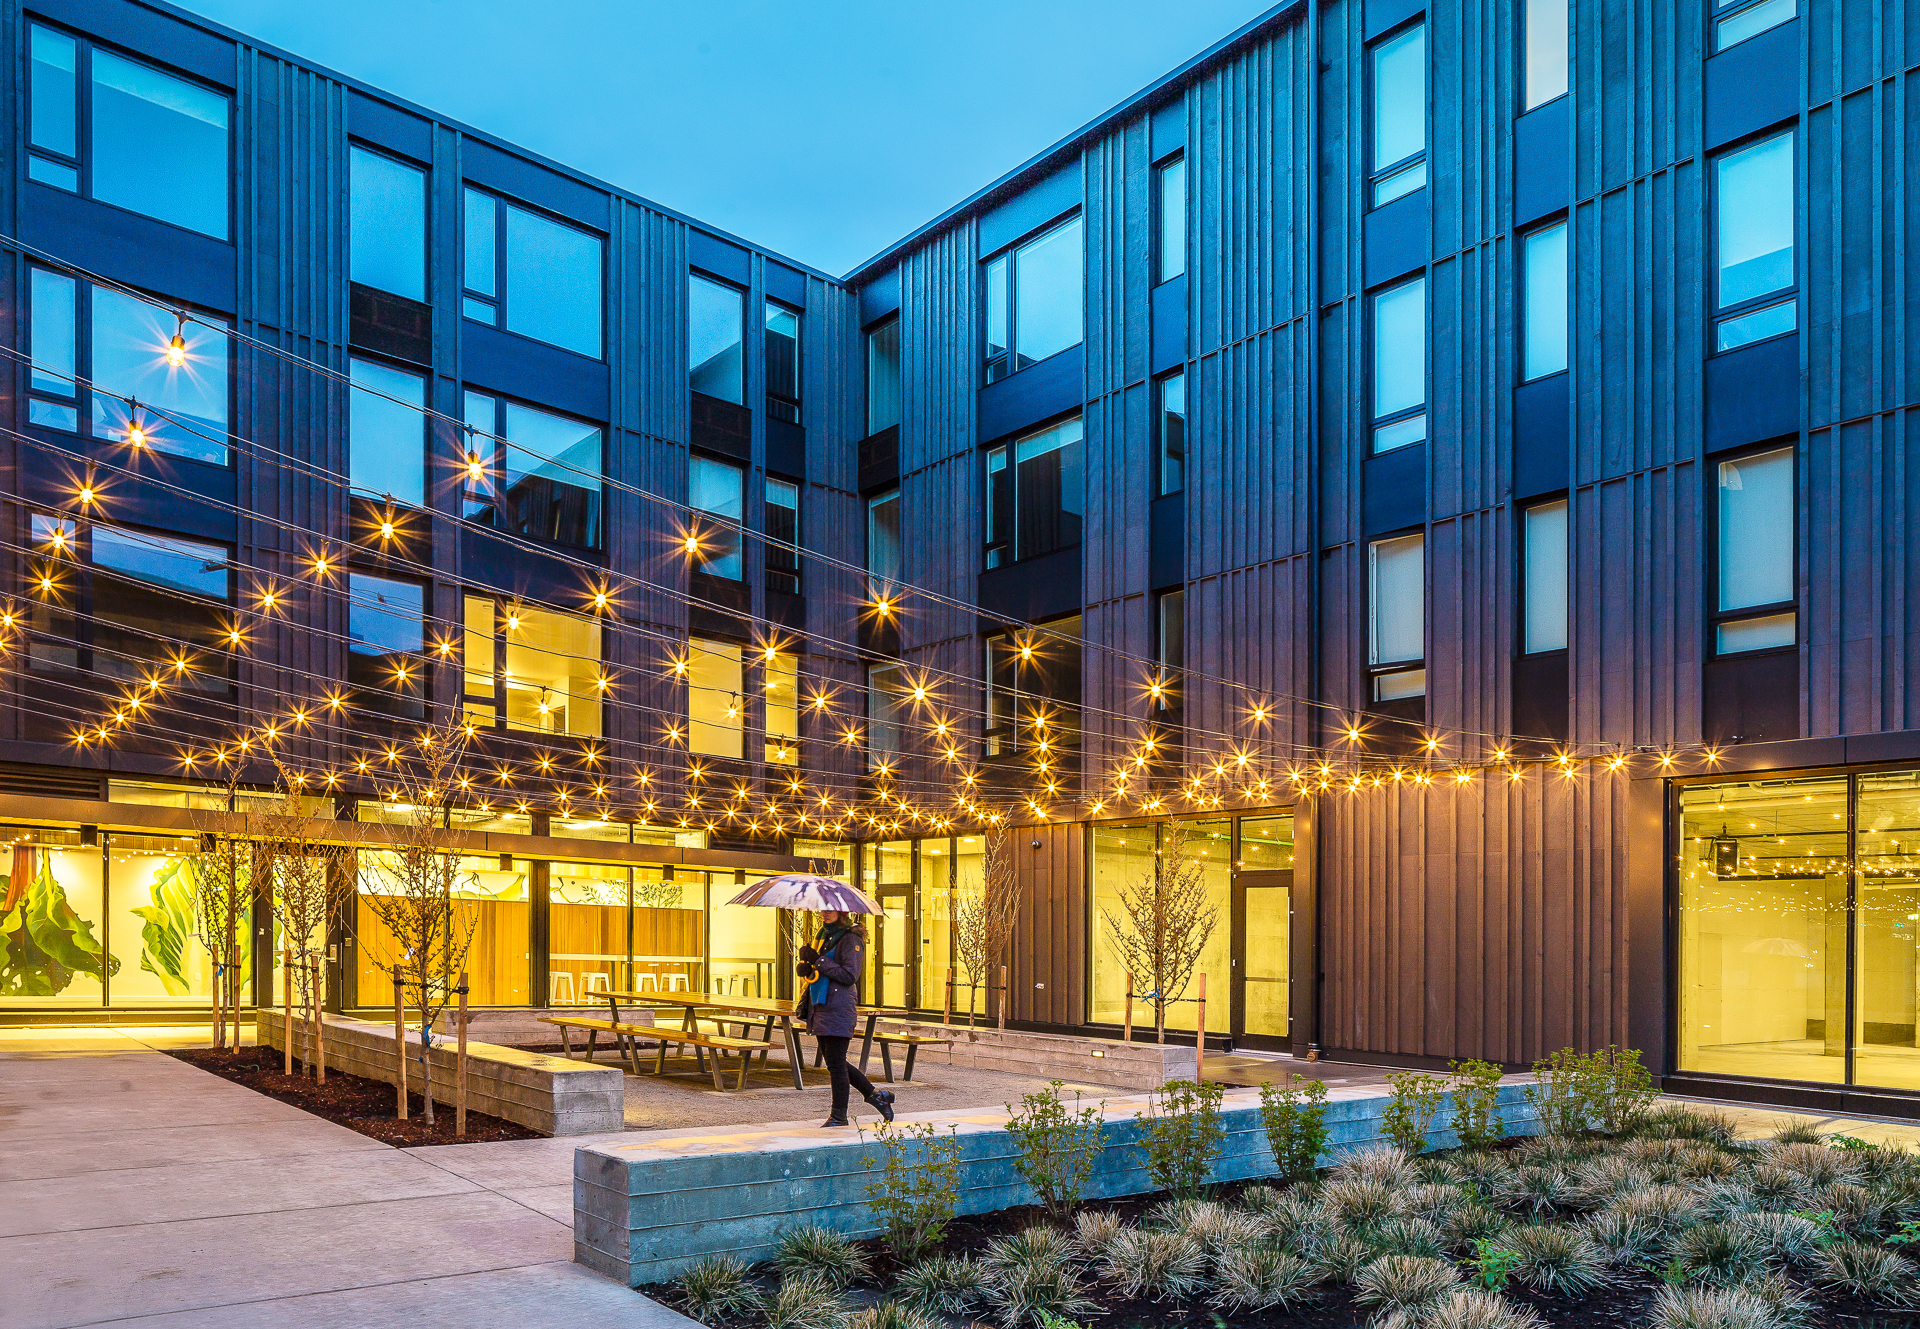 Lents Commons. Commissioned by Portland Development Commission. A collaboration between Prosper Portland and the Portland Housing Bureau.  Highlighting the mixed-use, mixed-income project with 54 units of housing and approximately 7,500 square feet of retail space on the ground floor.